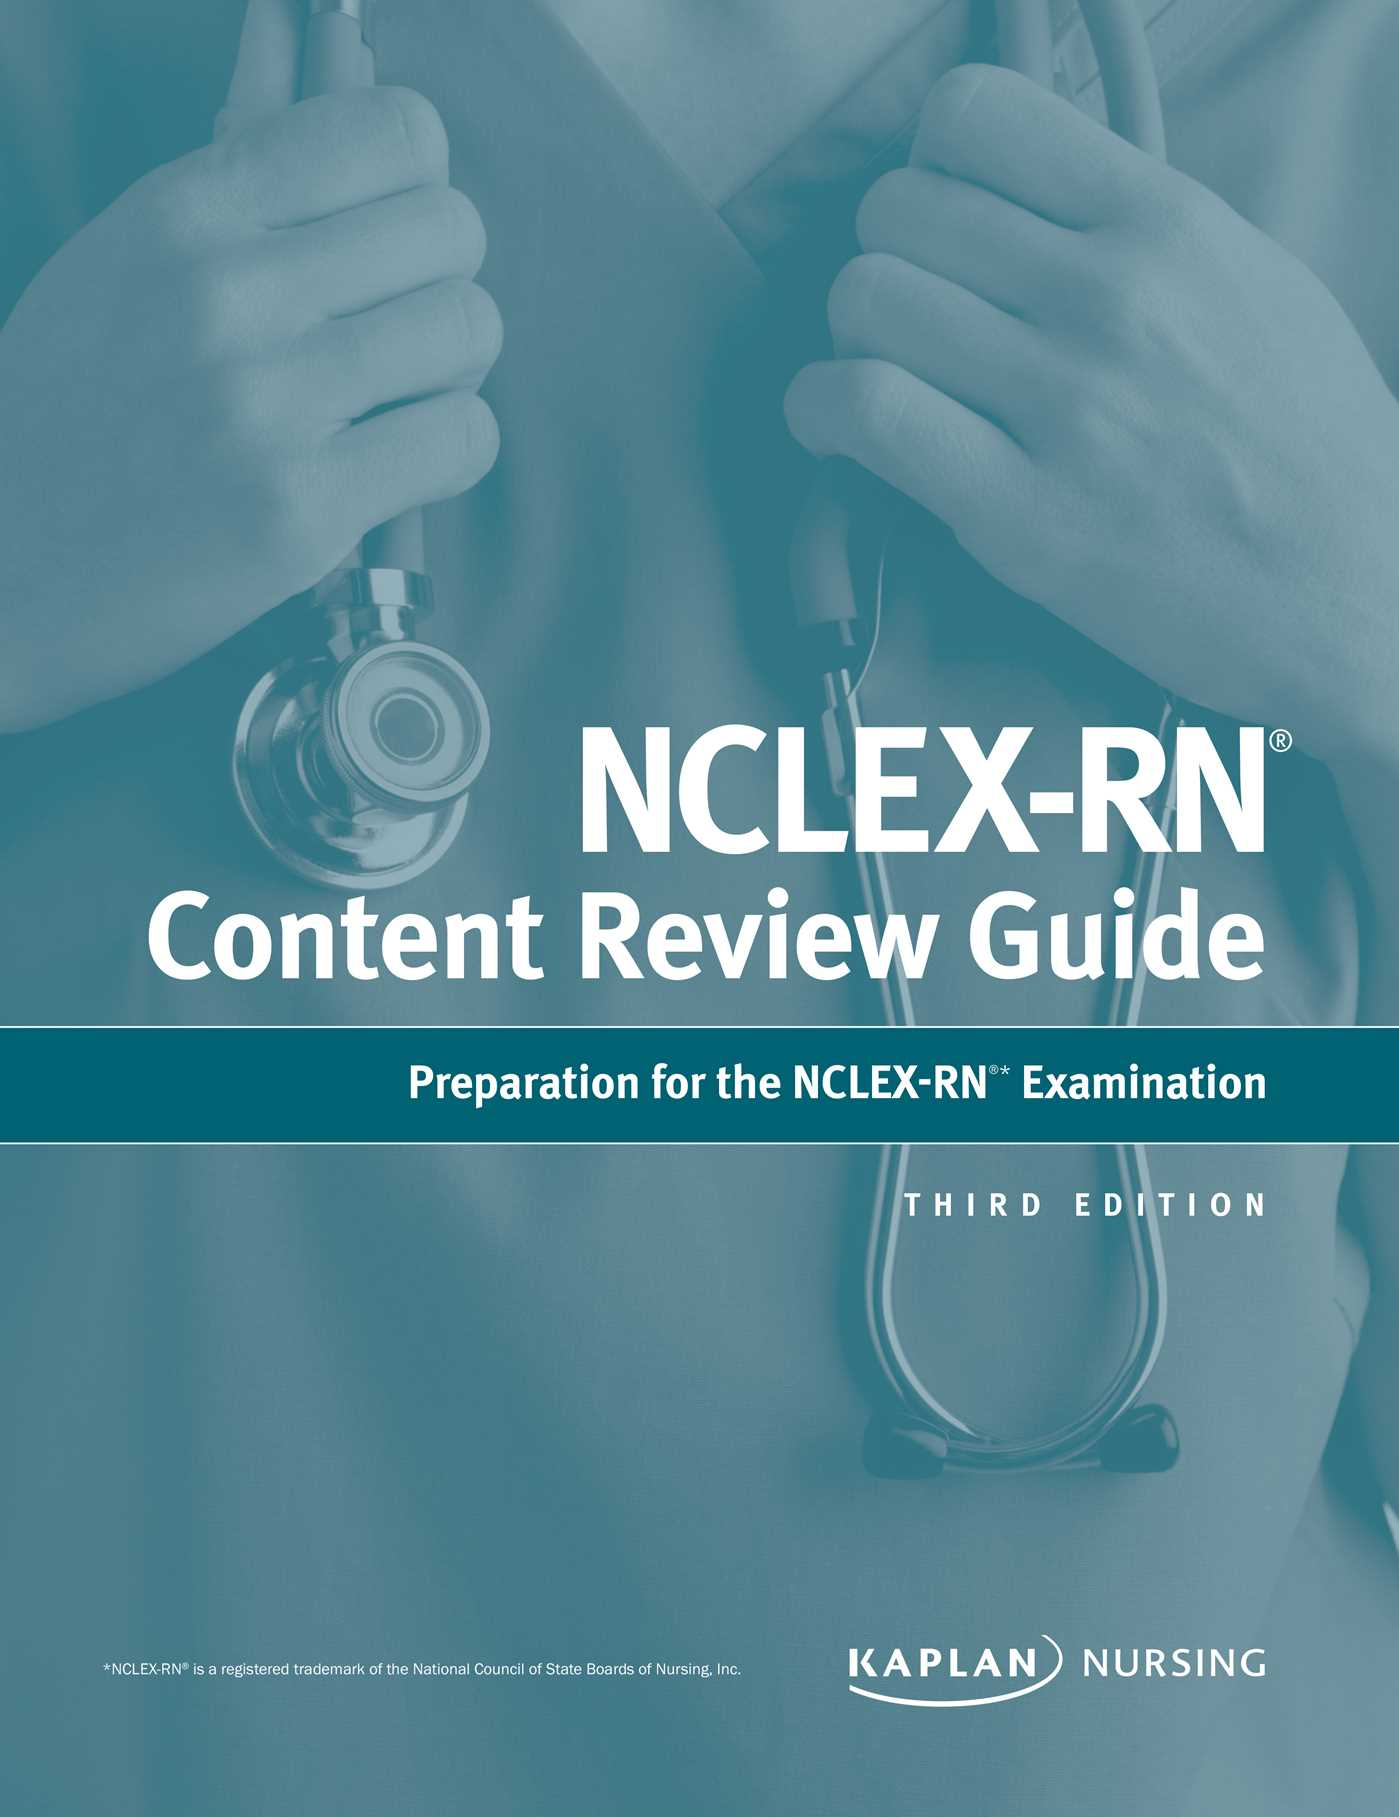 5 Best NCLEX Review Books - The Nerdy Nurse